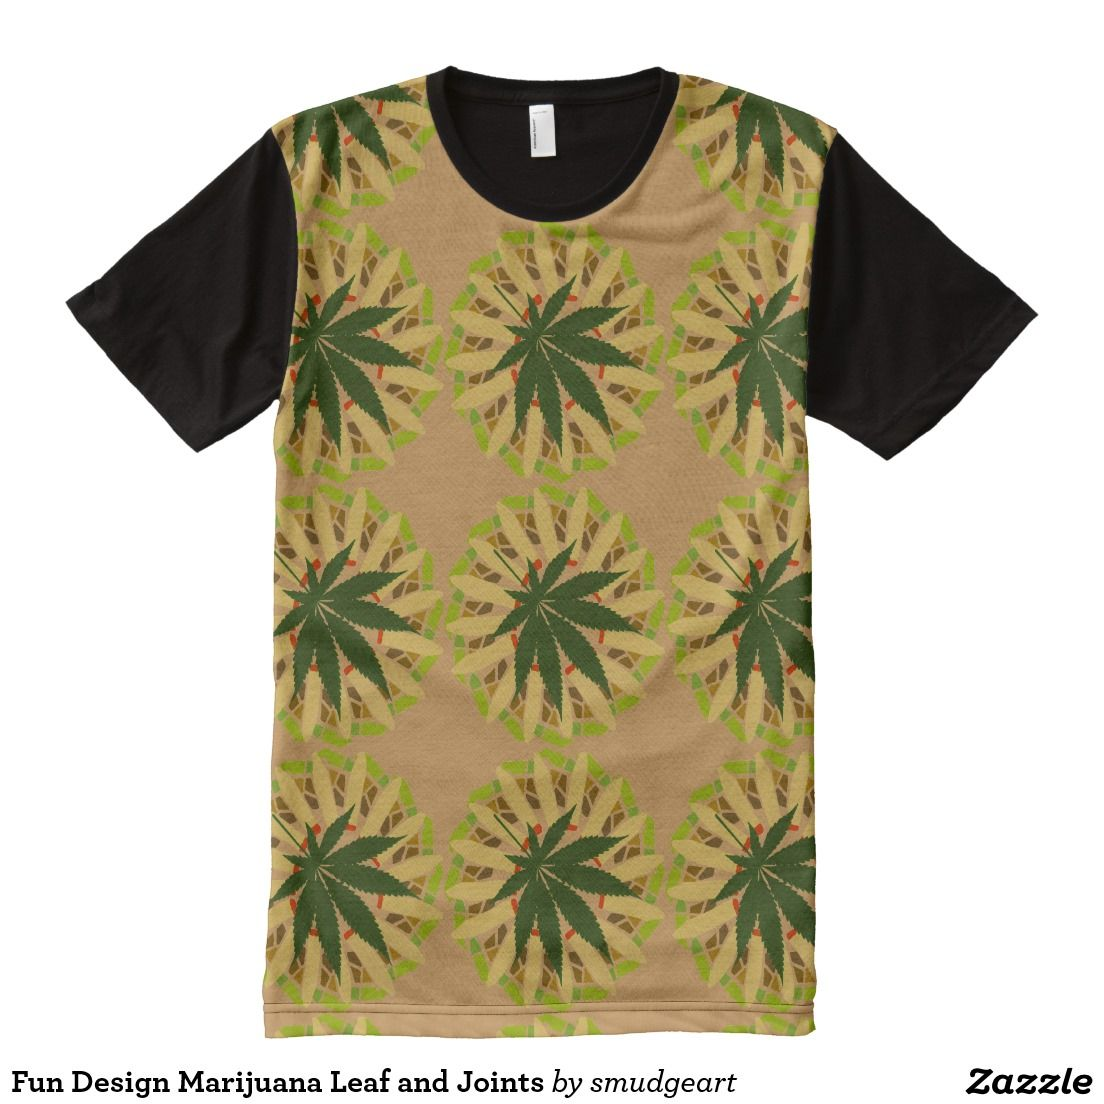 Zazzle t shirt design template - Fun Design Marijuana Leaf And Joints All Over Print T Shirt